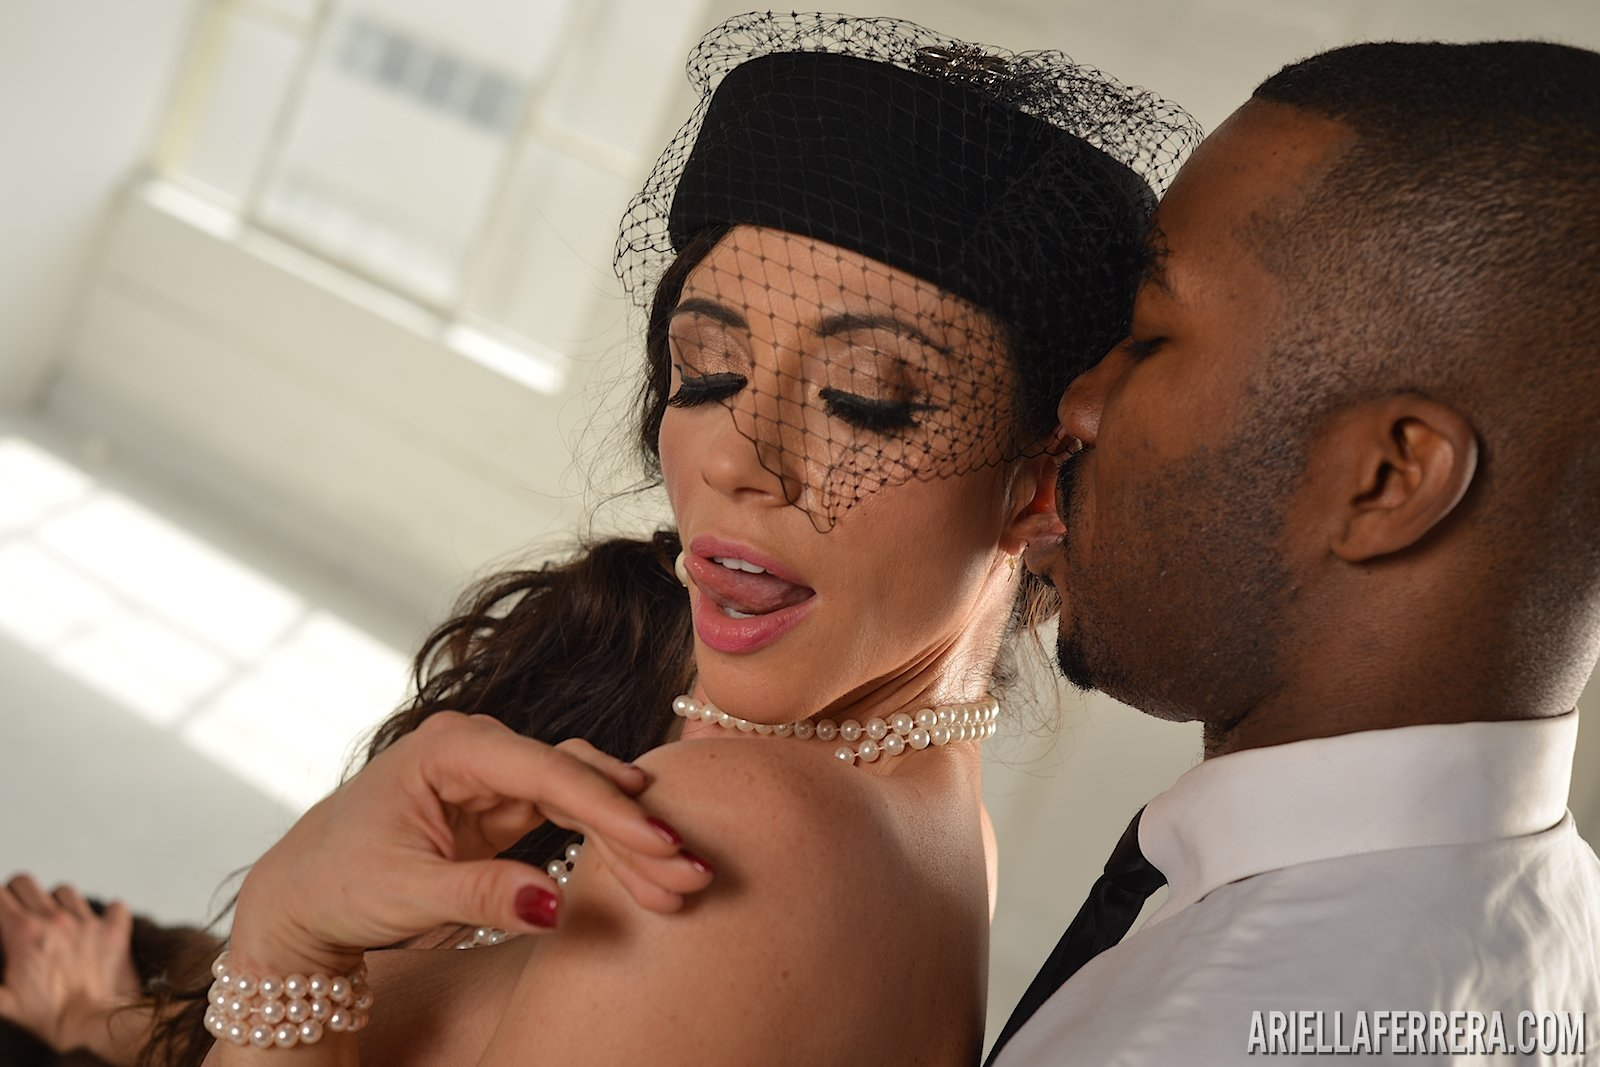 Ffm interracial porn #1